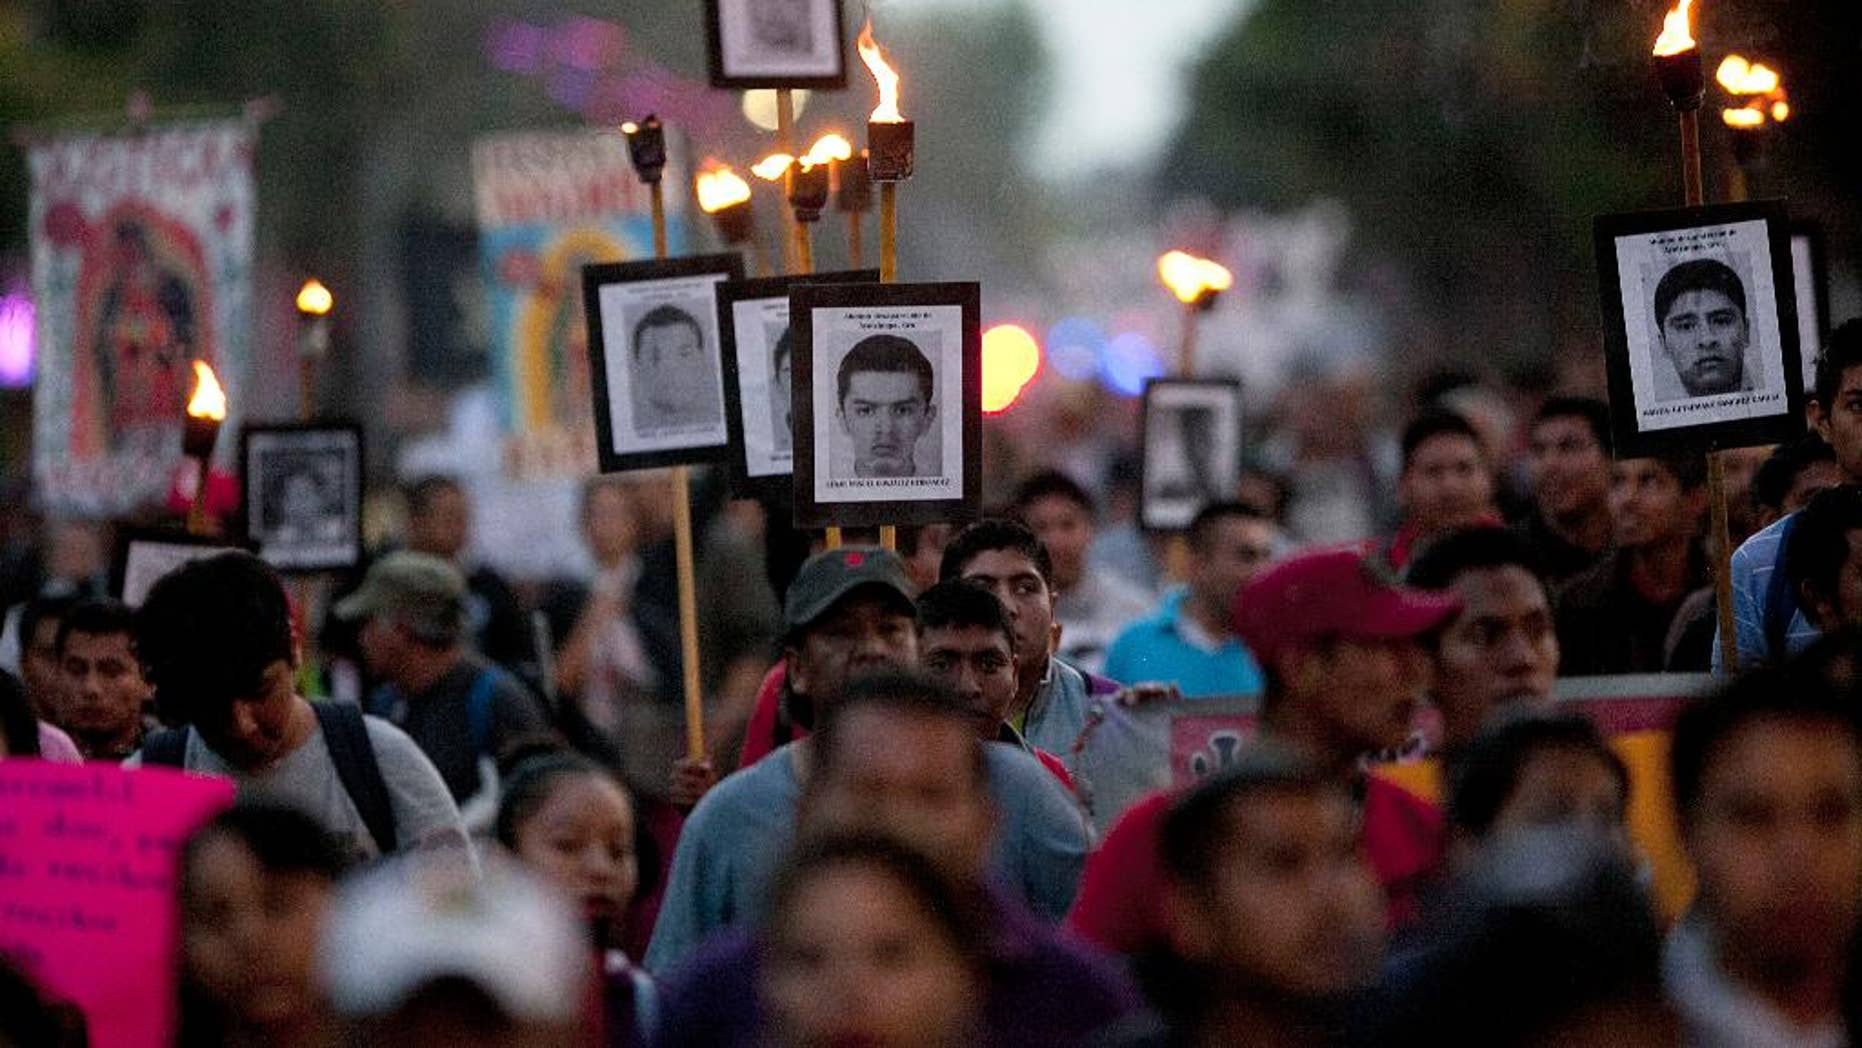 FILE - In this Dec. 26, 2015 file photo, relatives of the 43 missing students from the rural teachers college march holding pictures of their missing loved ones during a protest in Mexico City. Argentine forensic experts who have studied a dump in southern Mexico where government officials claim the bodies of 43 missing teachers' college students were burned say a new investigation of the site is incomplete and inconclusive. The Argentine Forensic Anthropology Team was called in shortly after the students from the Rural Normal School at Ayotzinapa disappeared in Iguala in Guerrero state on Sept. 26, 2014. (AP Photo/Marco Ugarte, File)